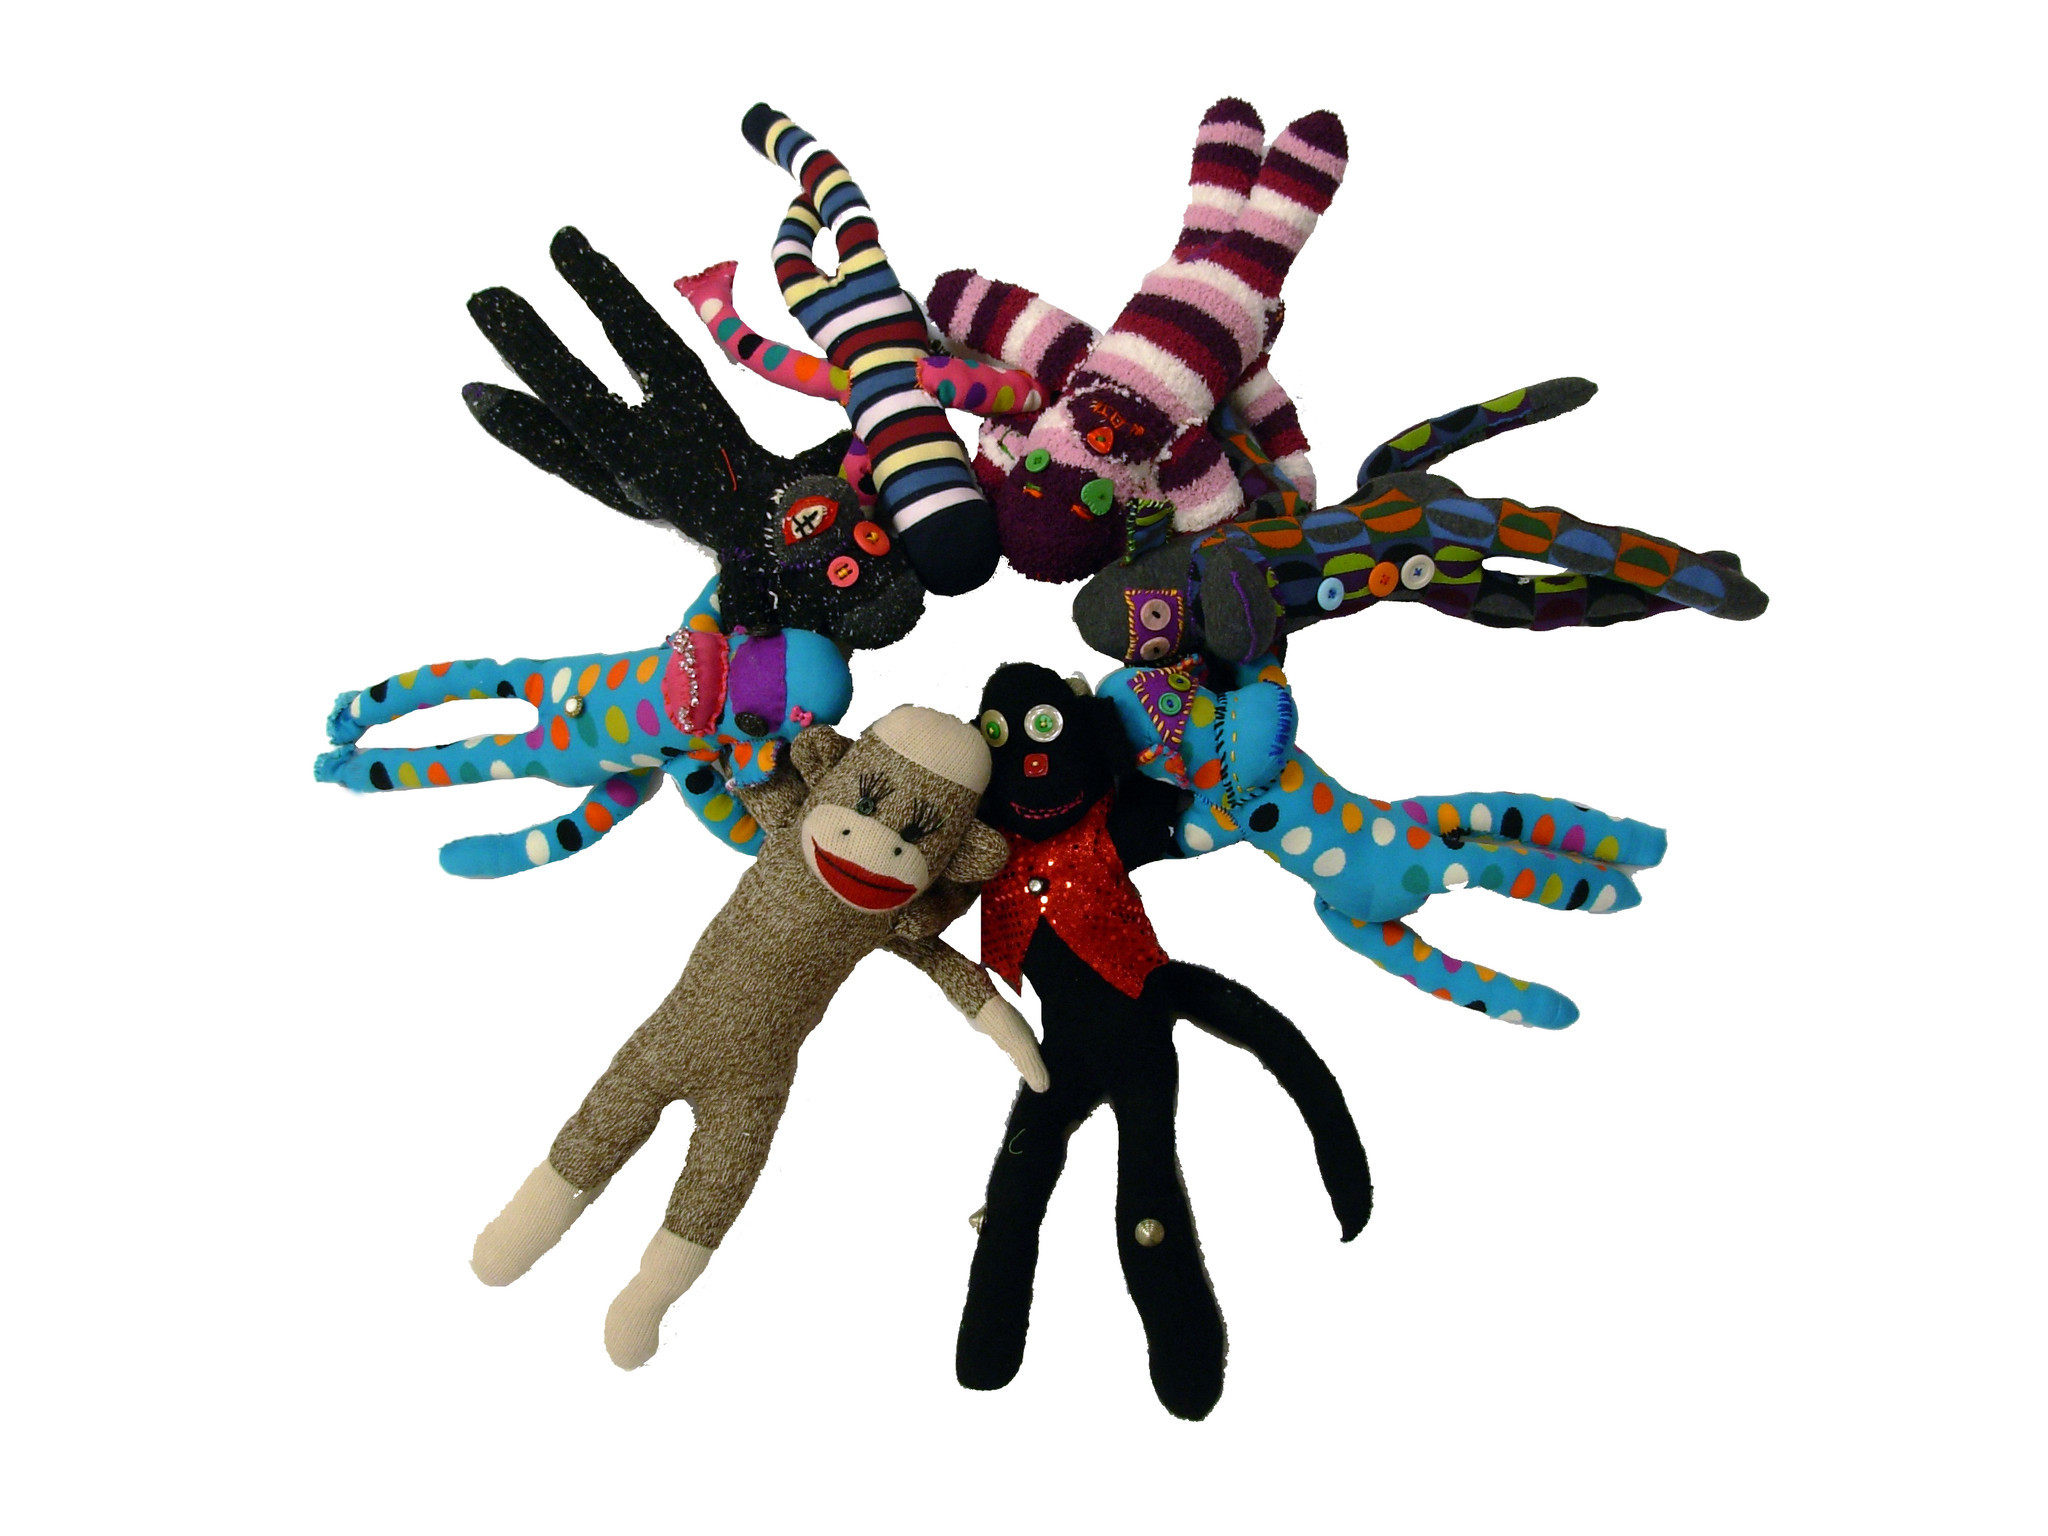 Gift guide 2011: 5 classes for gift-making - Sock Monkey Saturday